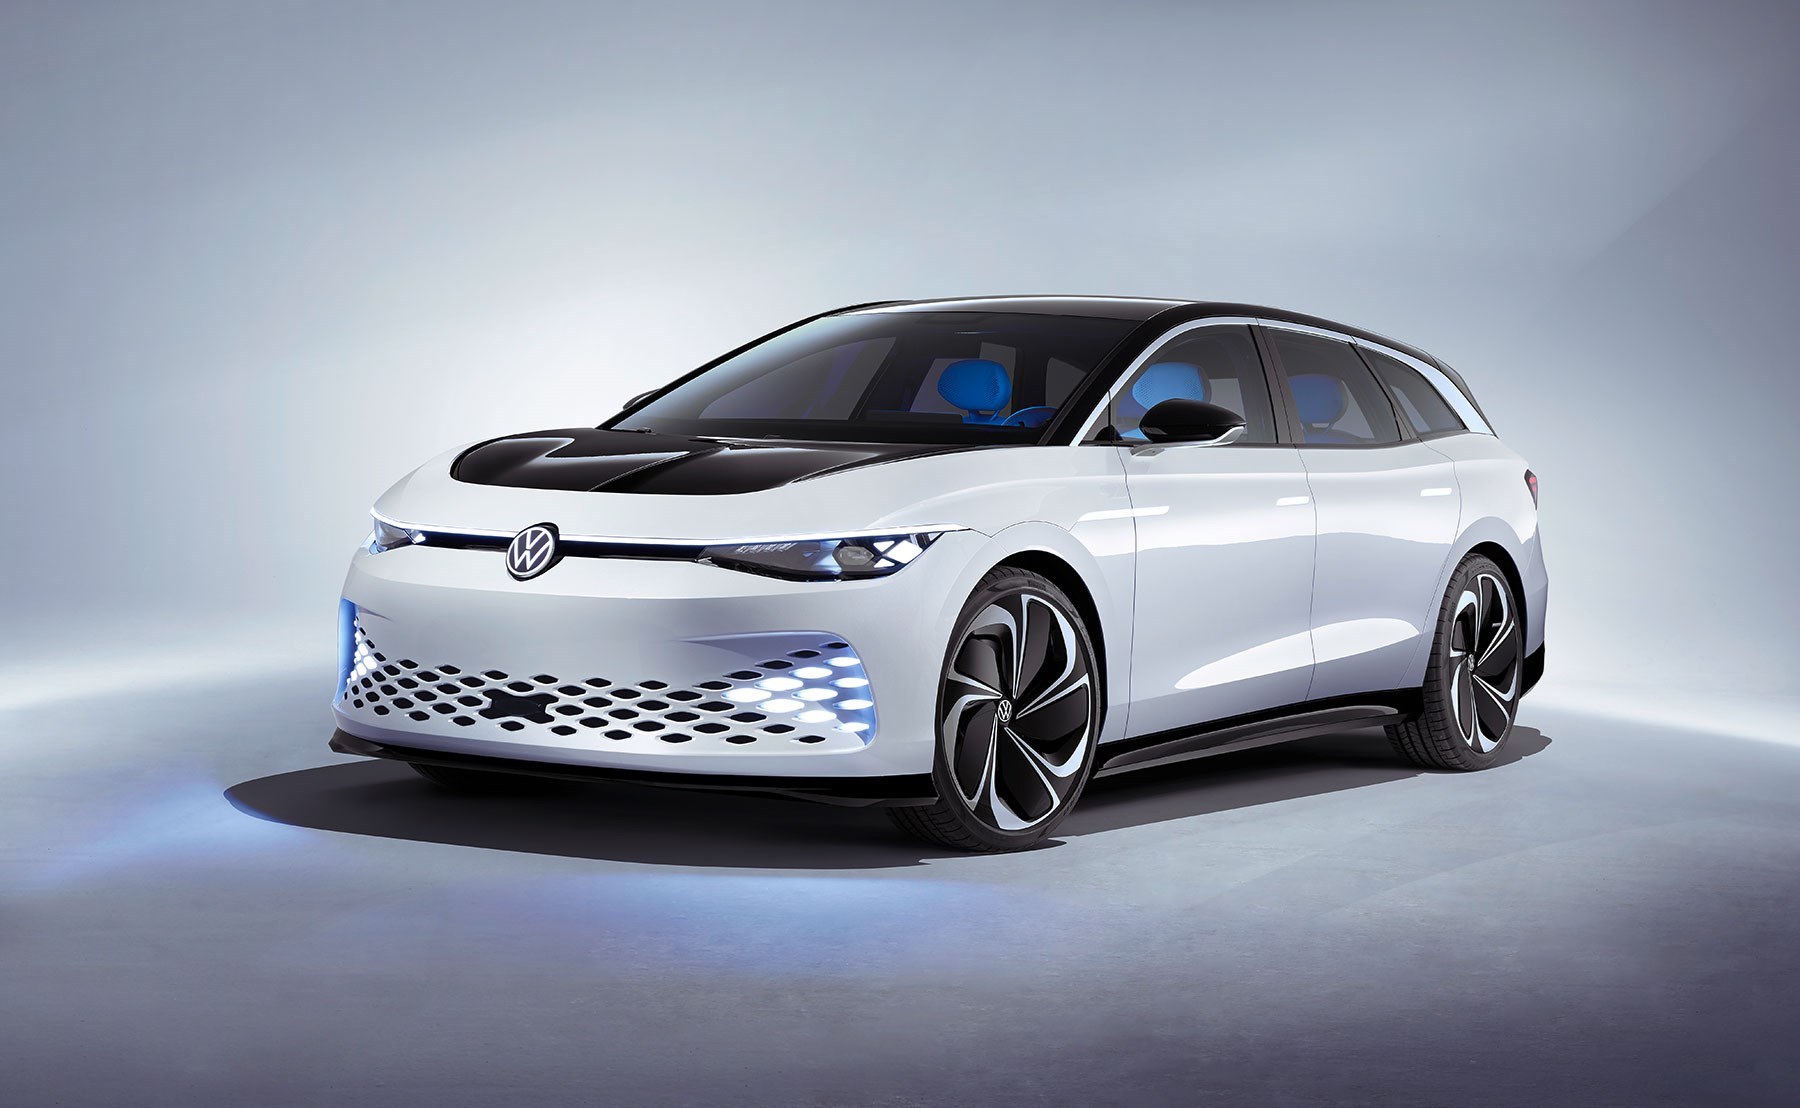 Volkswagen unveils the ID. Space Vizzion